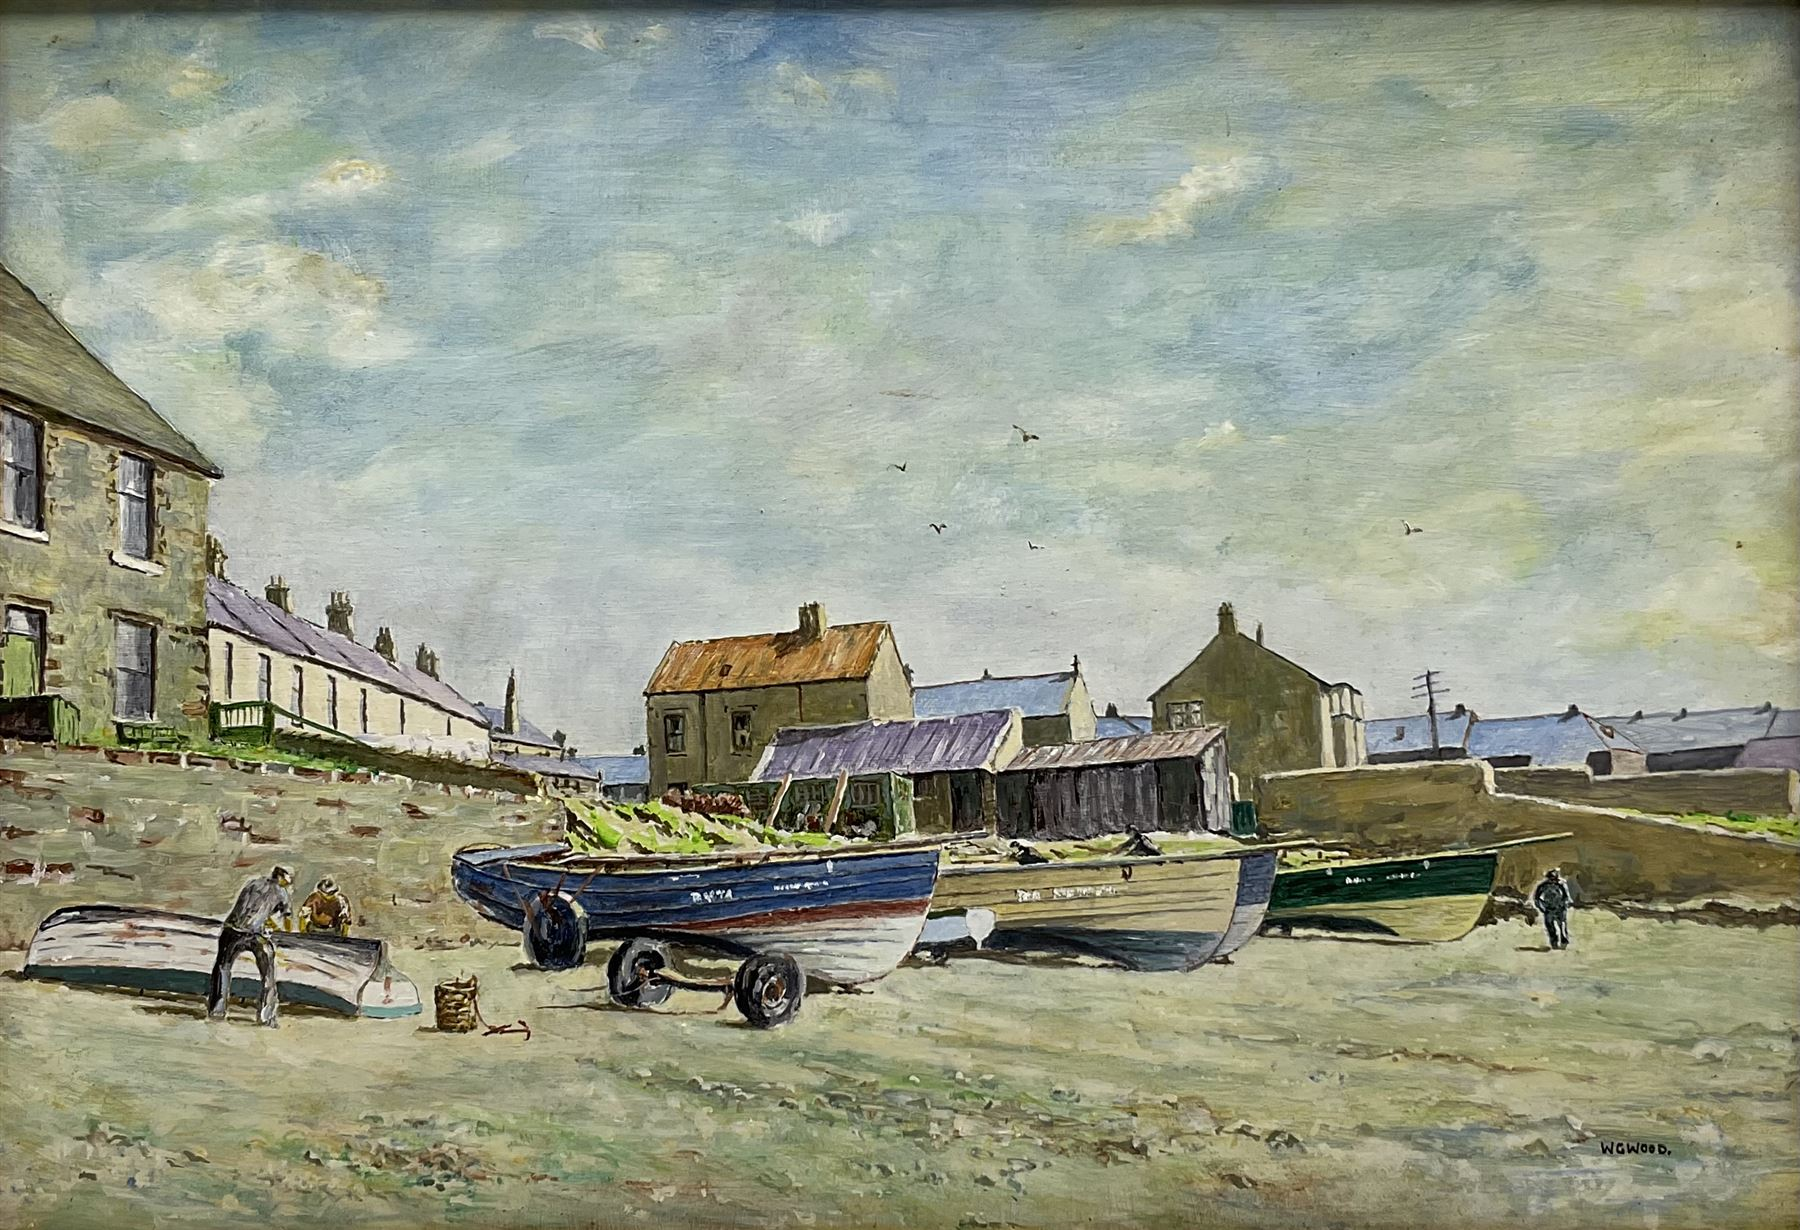 W G Wood (20th century): Cobles on a North East Beach